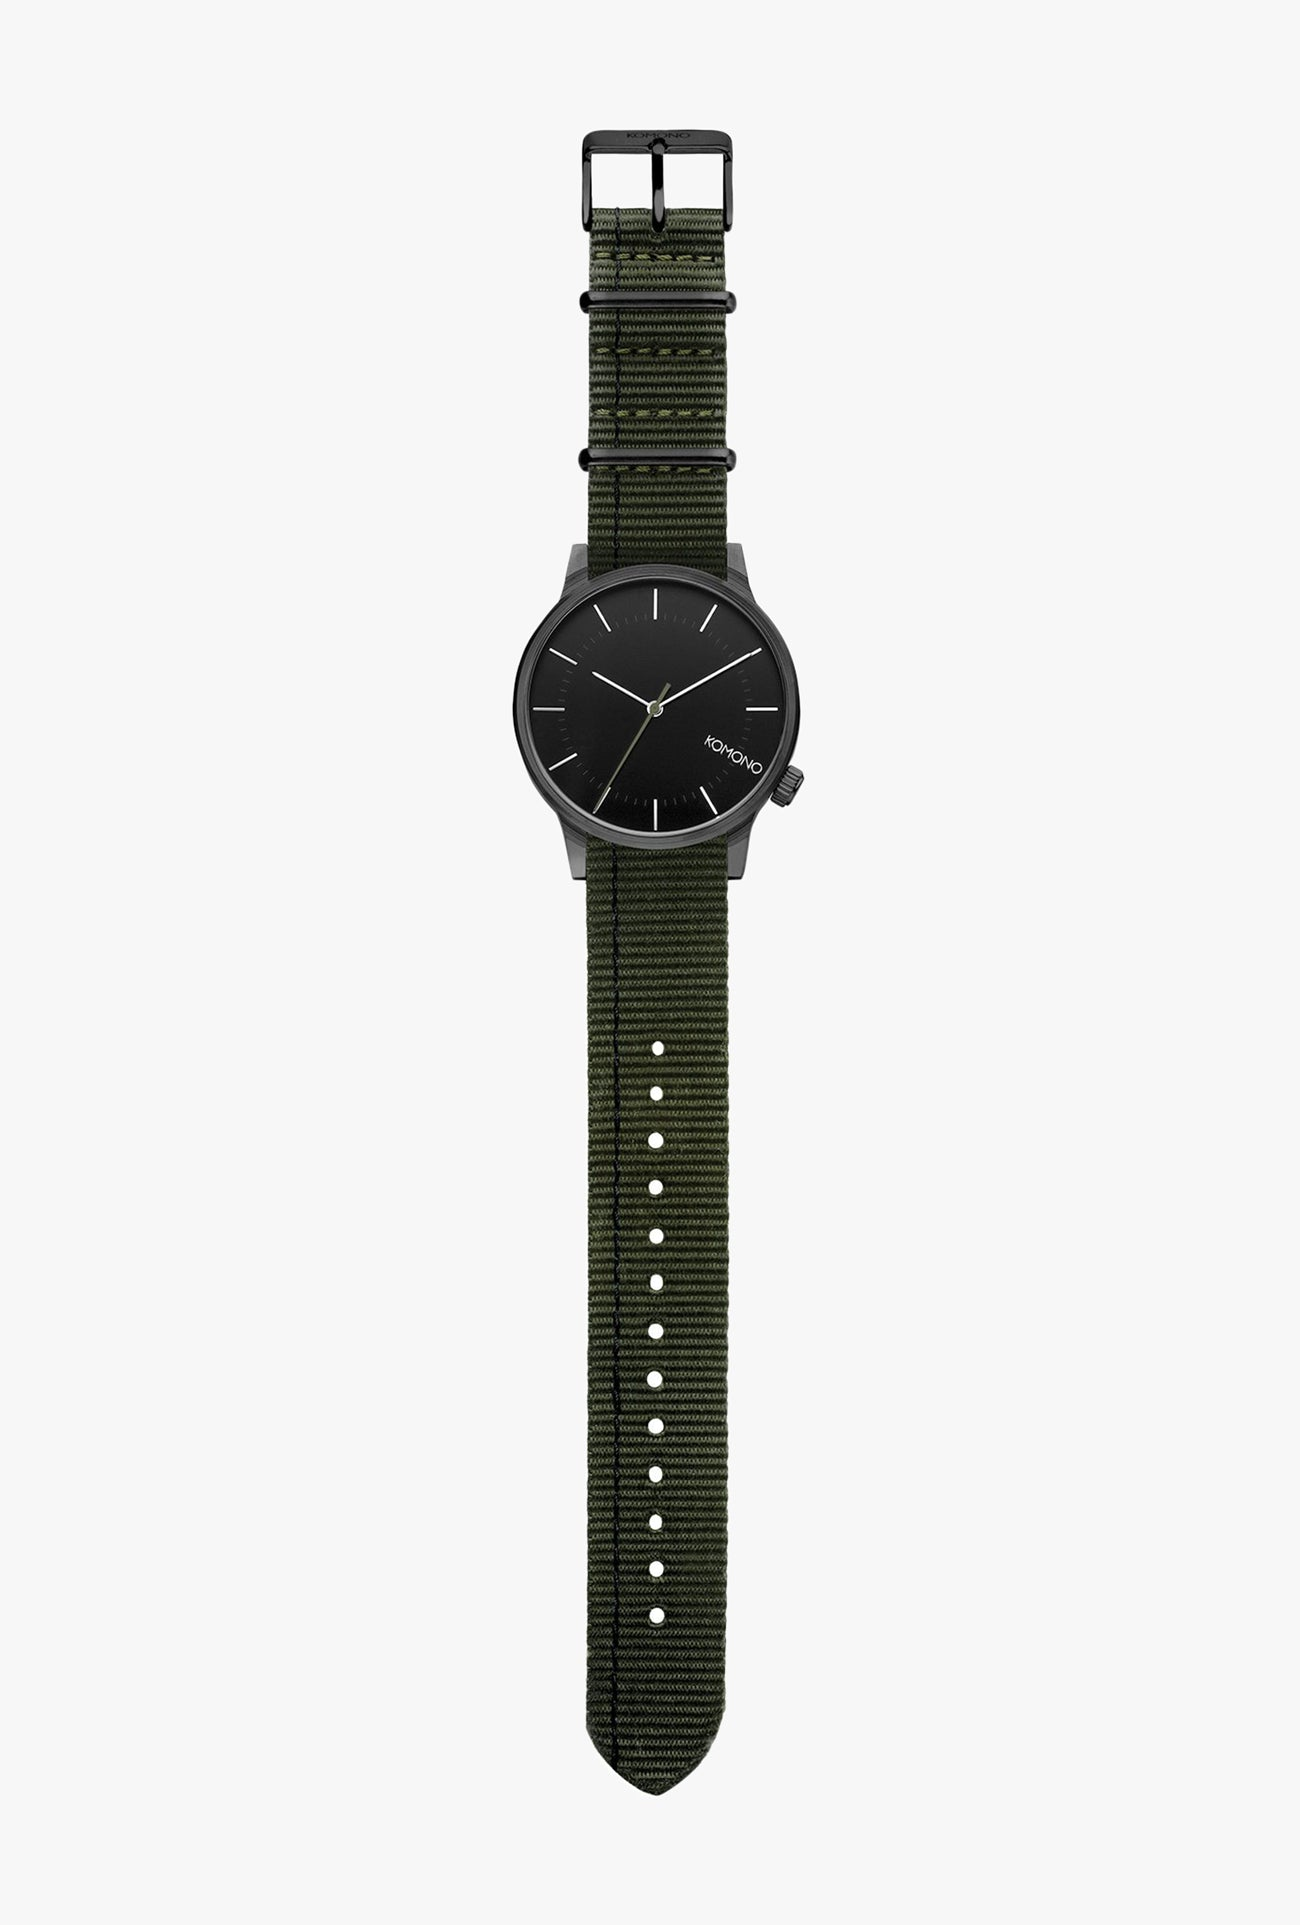 Winston Regal Watch - Nato Green